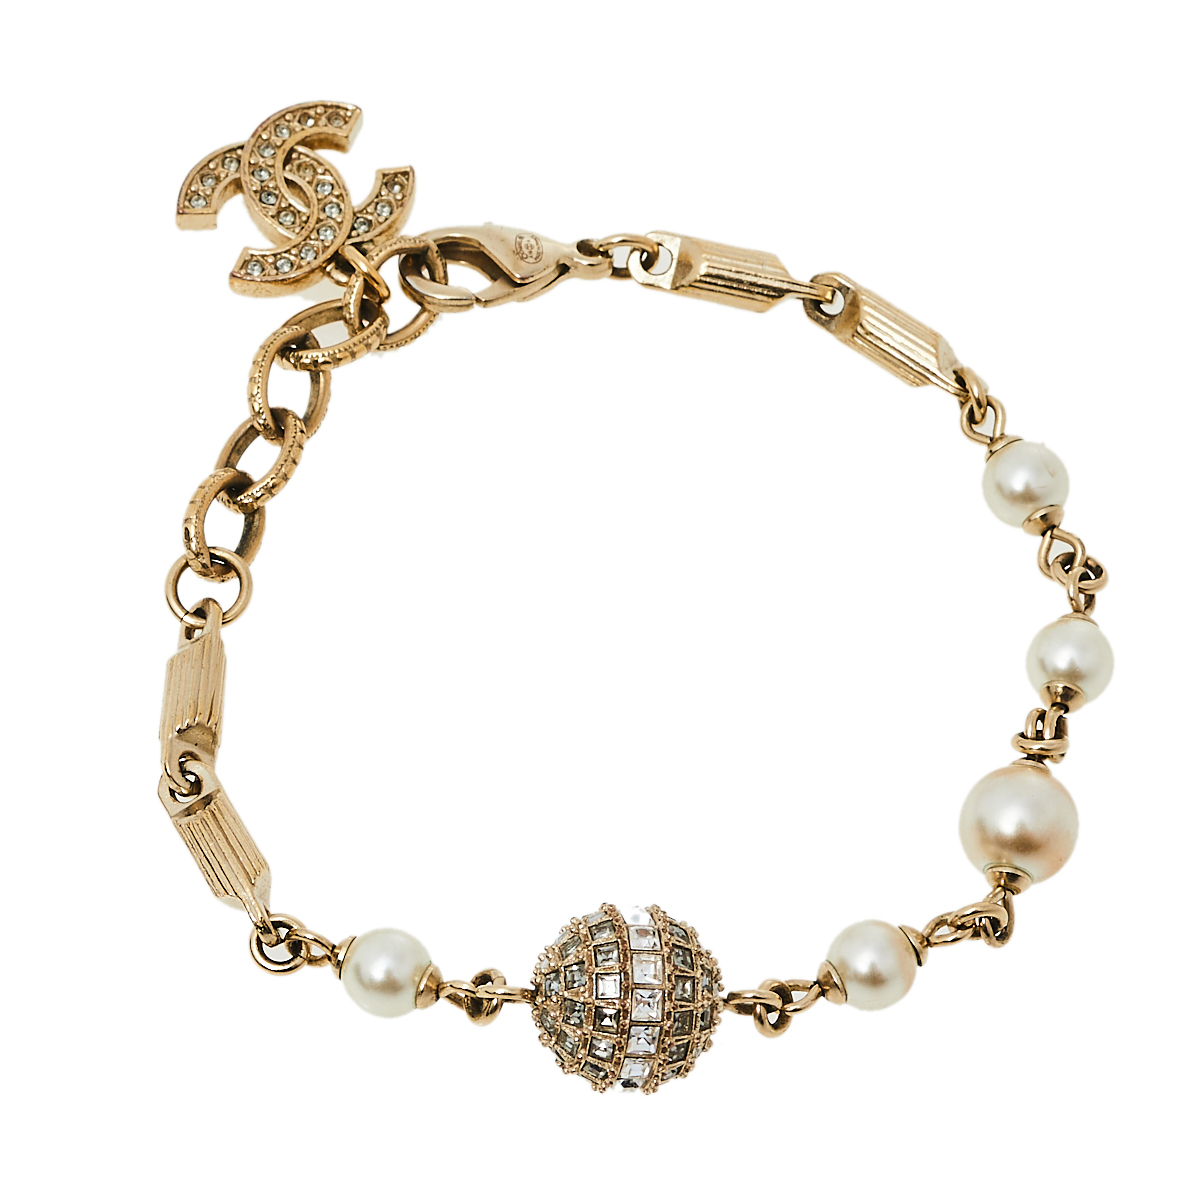 Pre-owned Chanel Gold Tone Crystal Ball And Cc Charm Bracelet